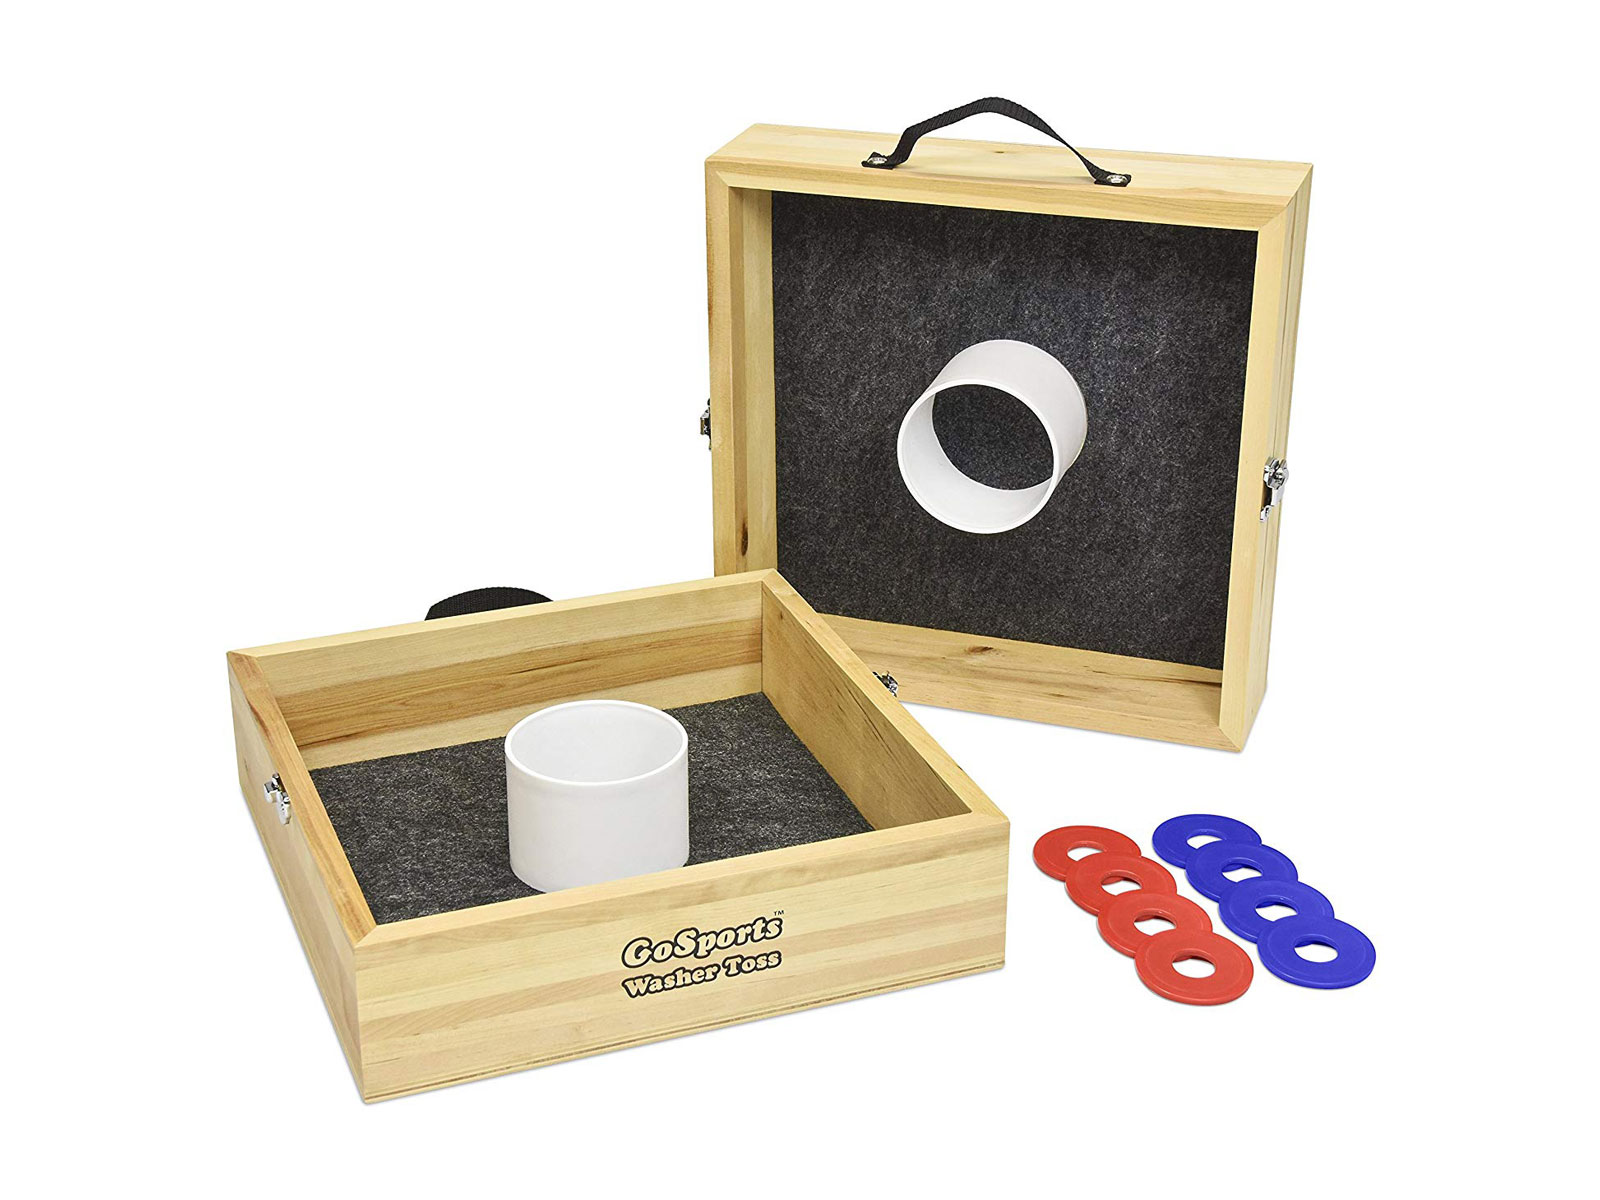 Washer Toss